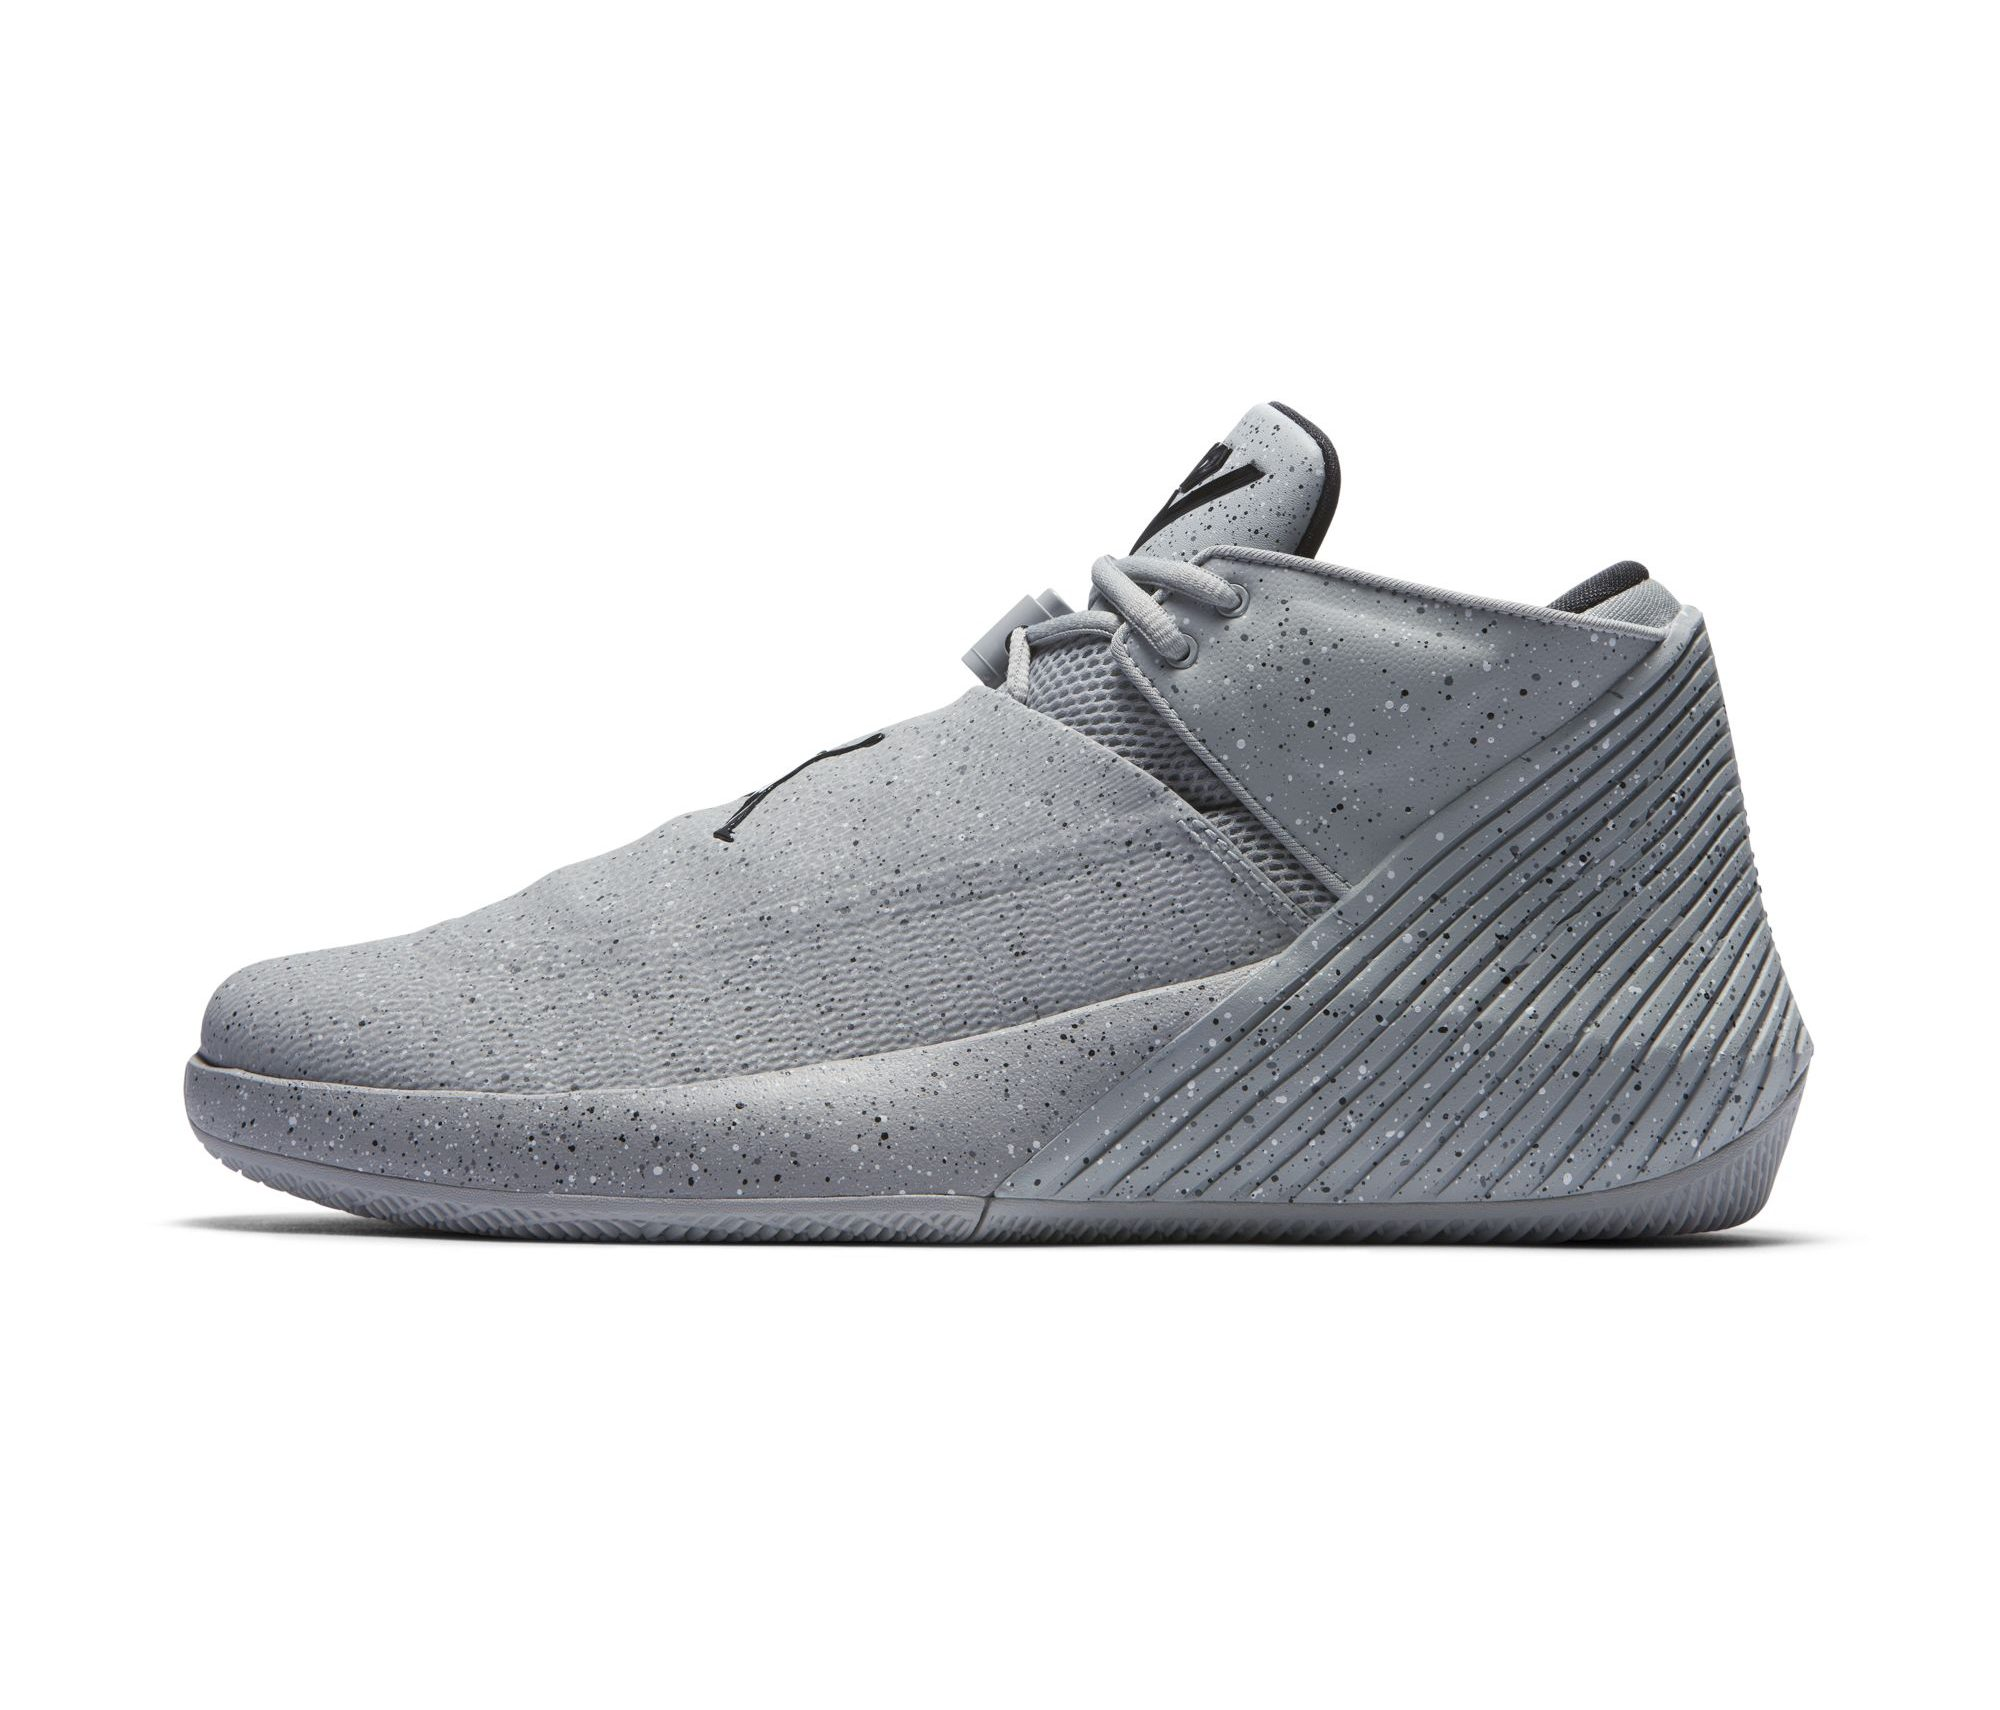 3110dadf24be Air Jordan Why Not Zer0.1 Low Surfaces in the Stone Colorway 3 ...